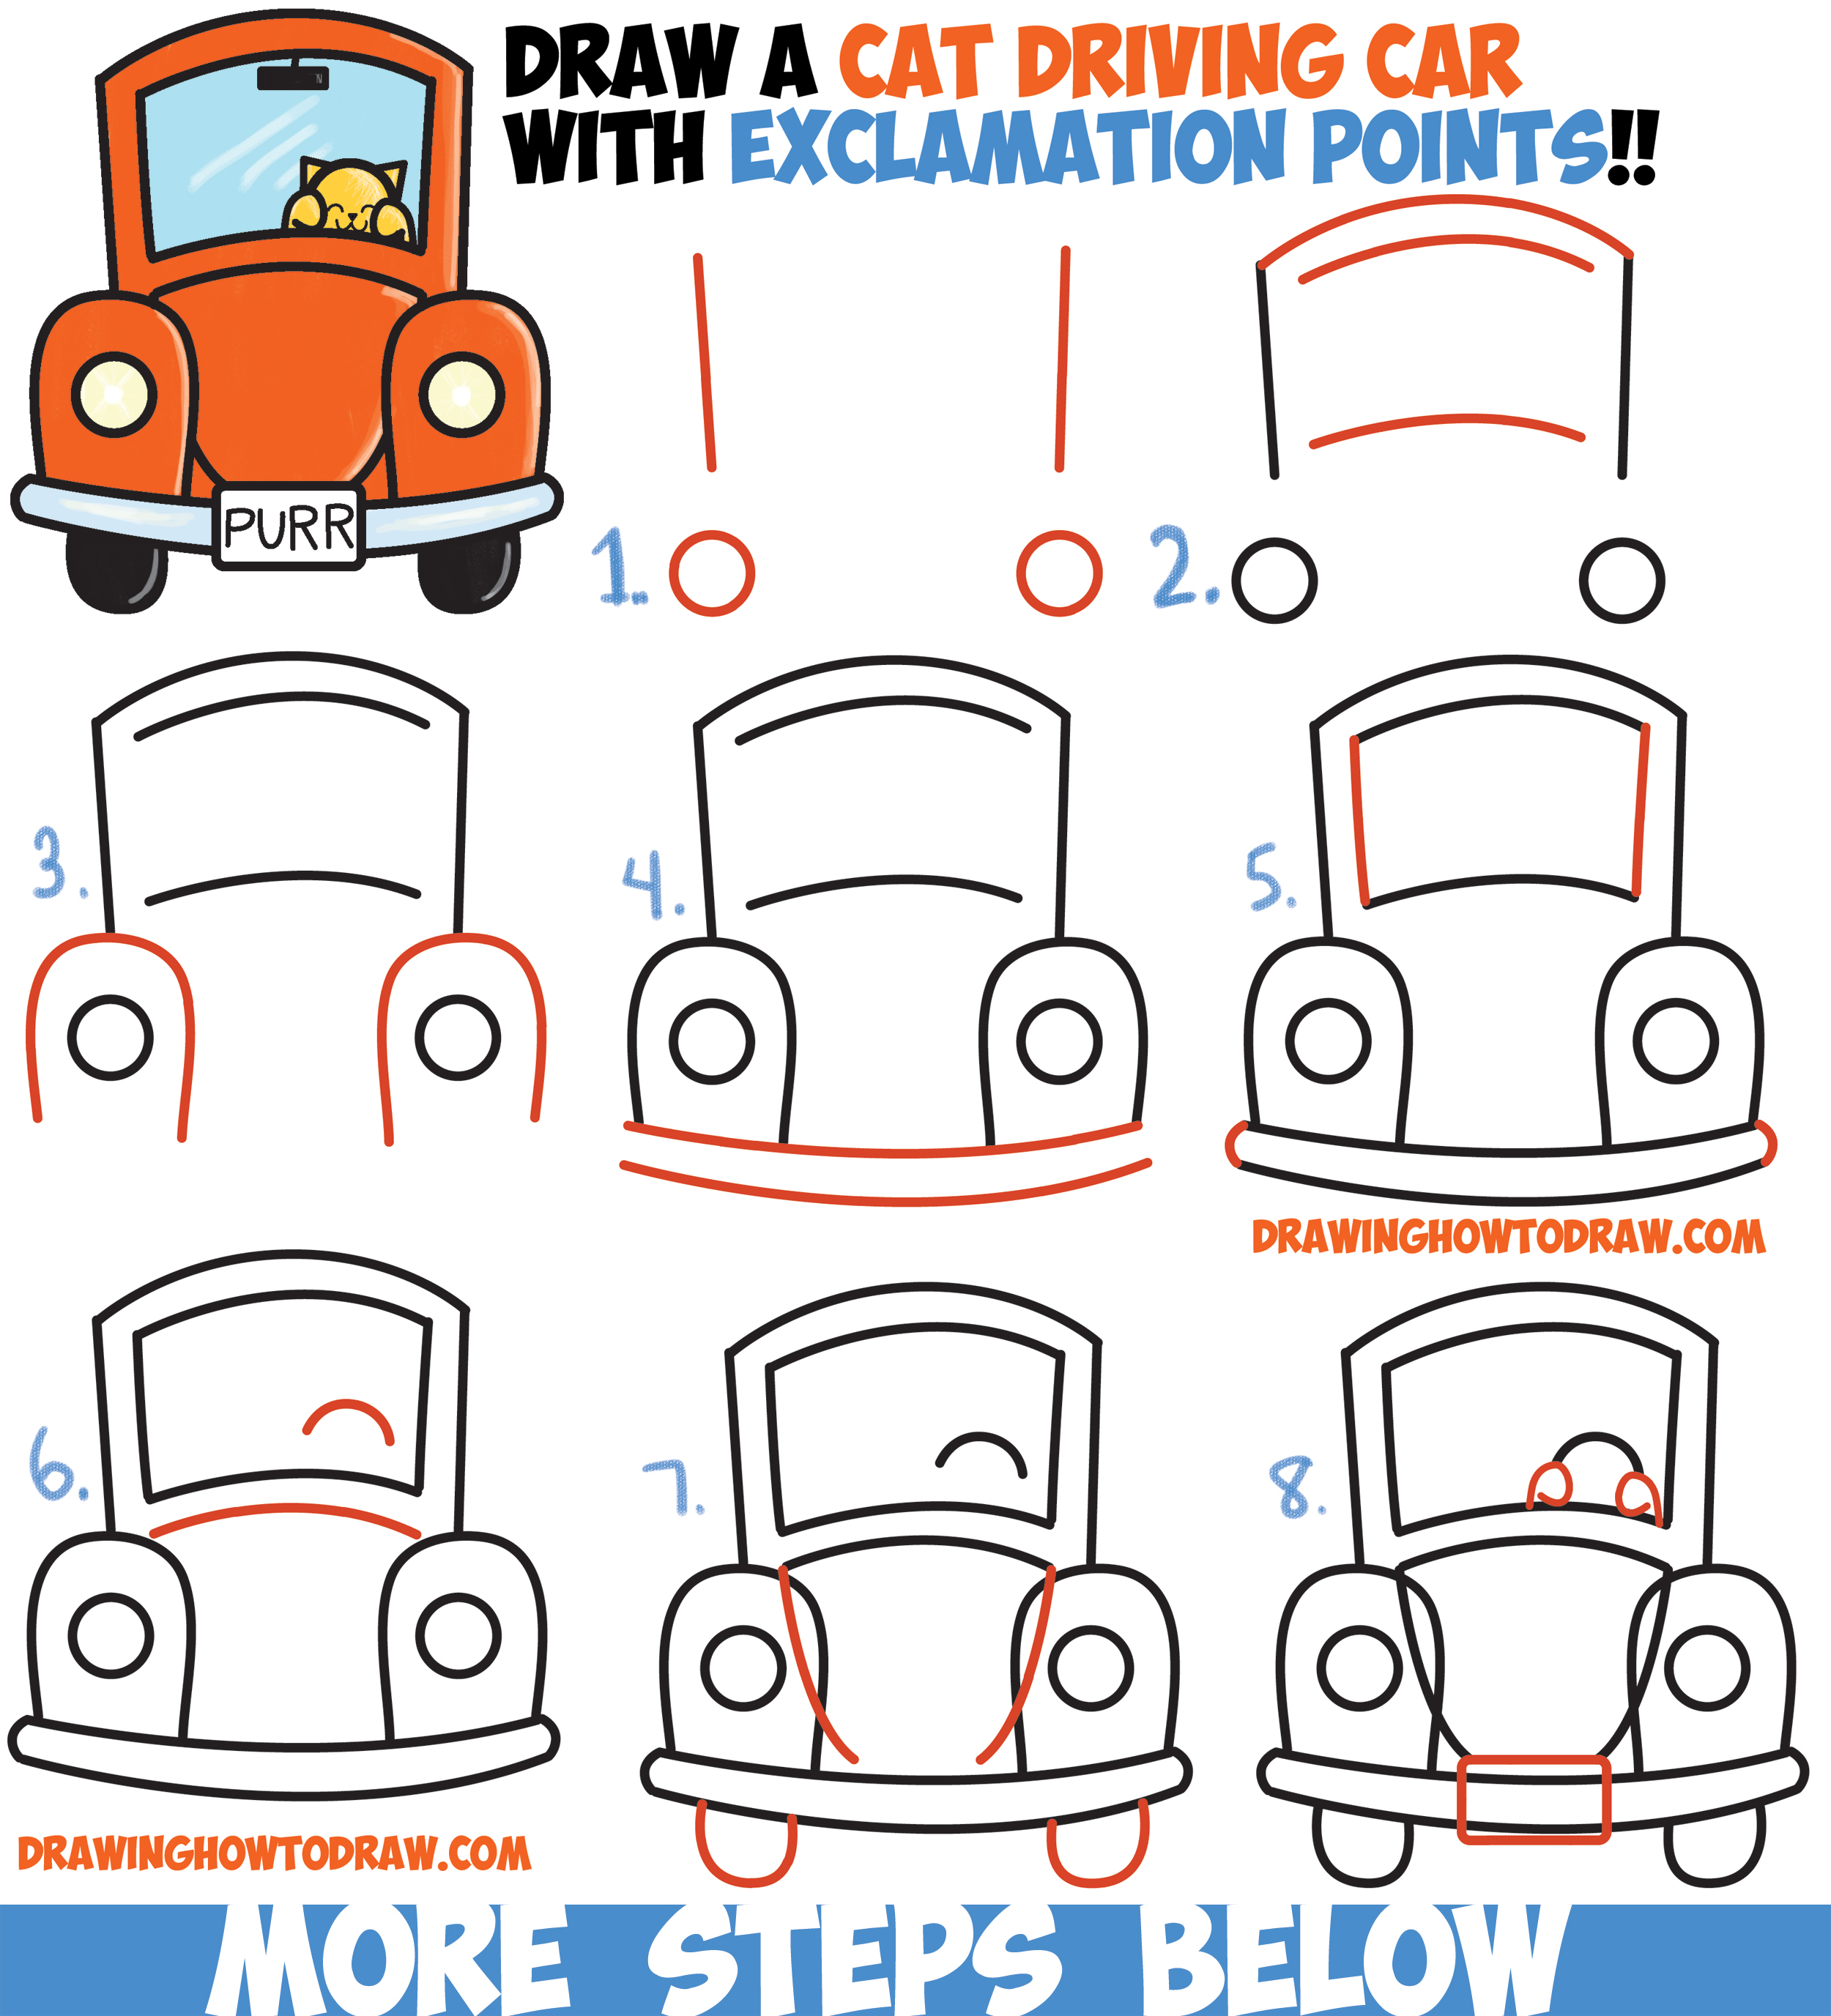 how to draw cute cartoon cat driving a car from exclamation points easy step by step